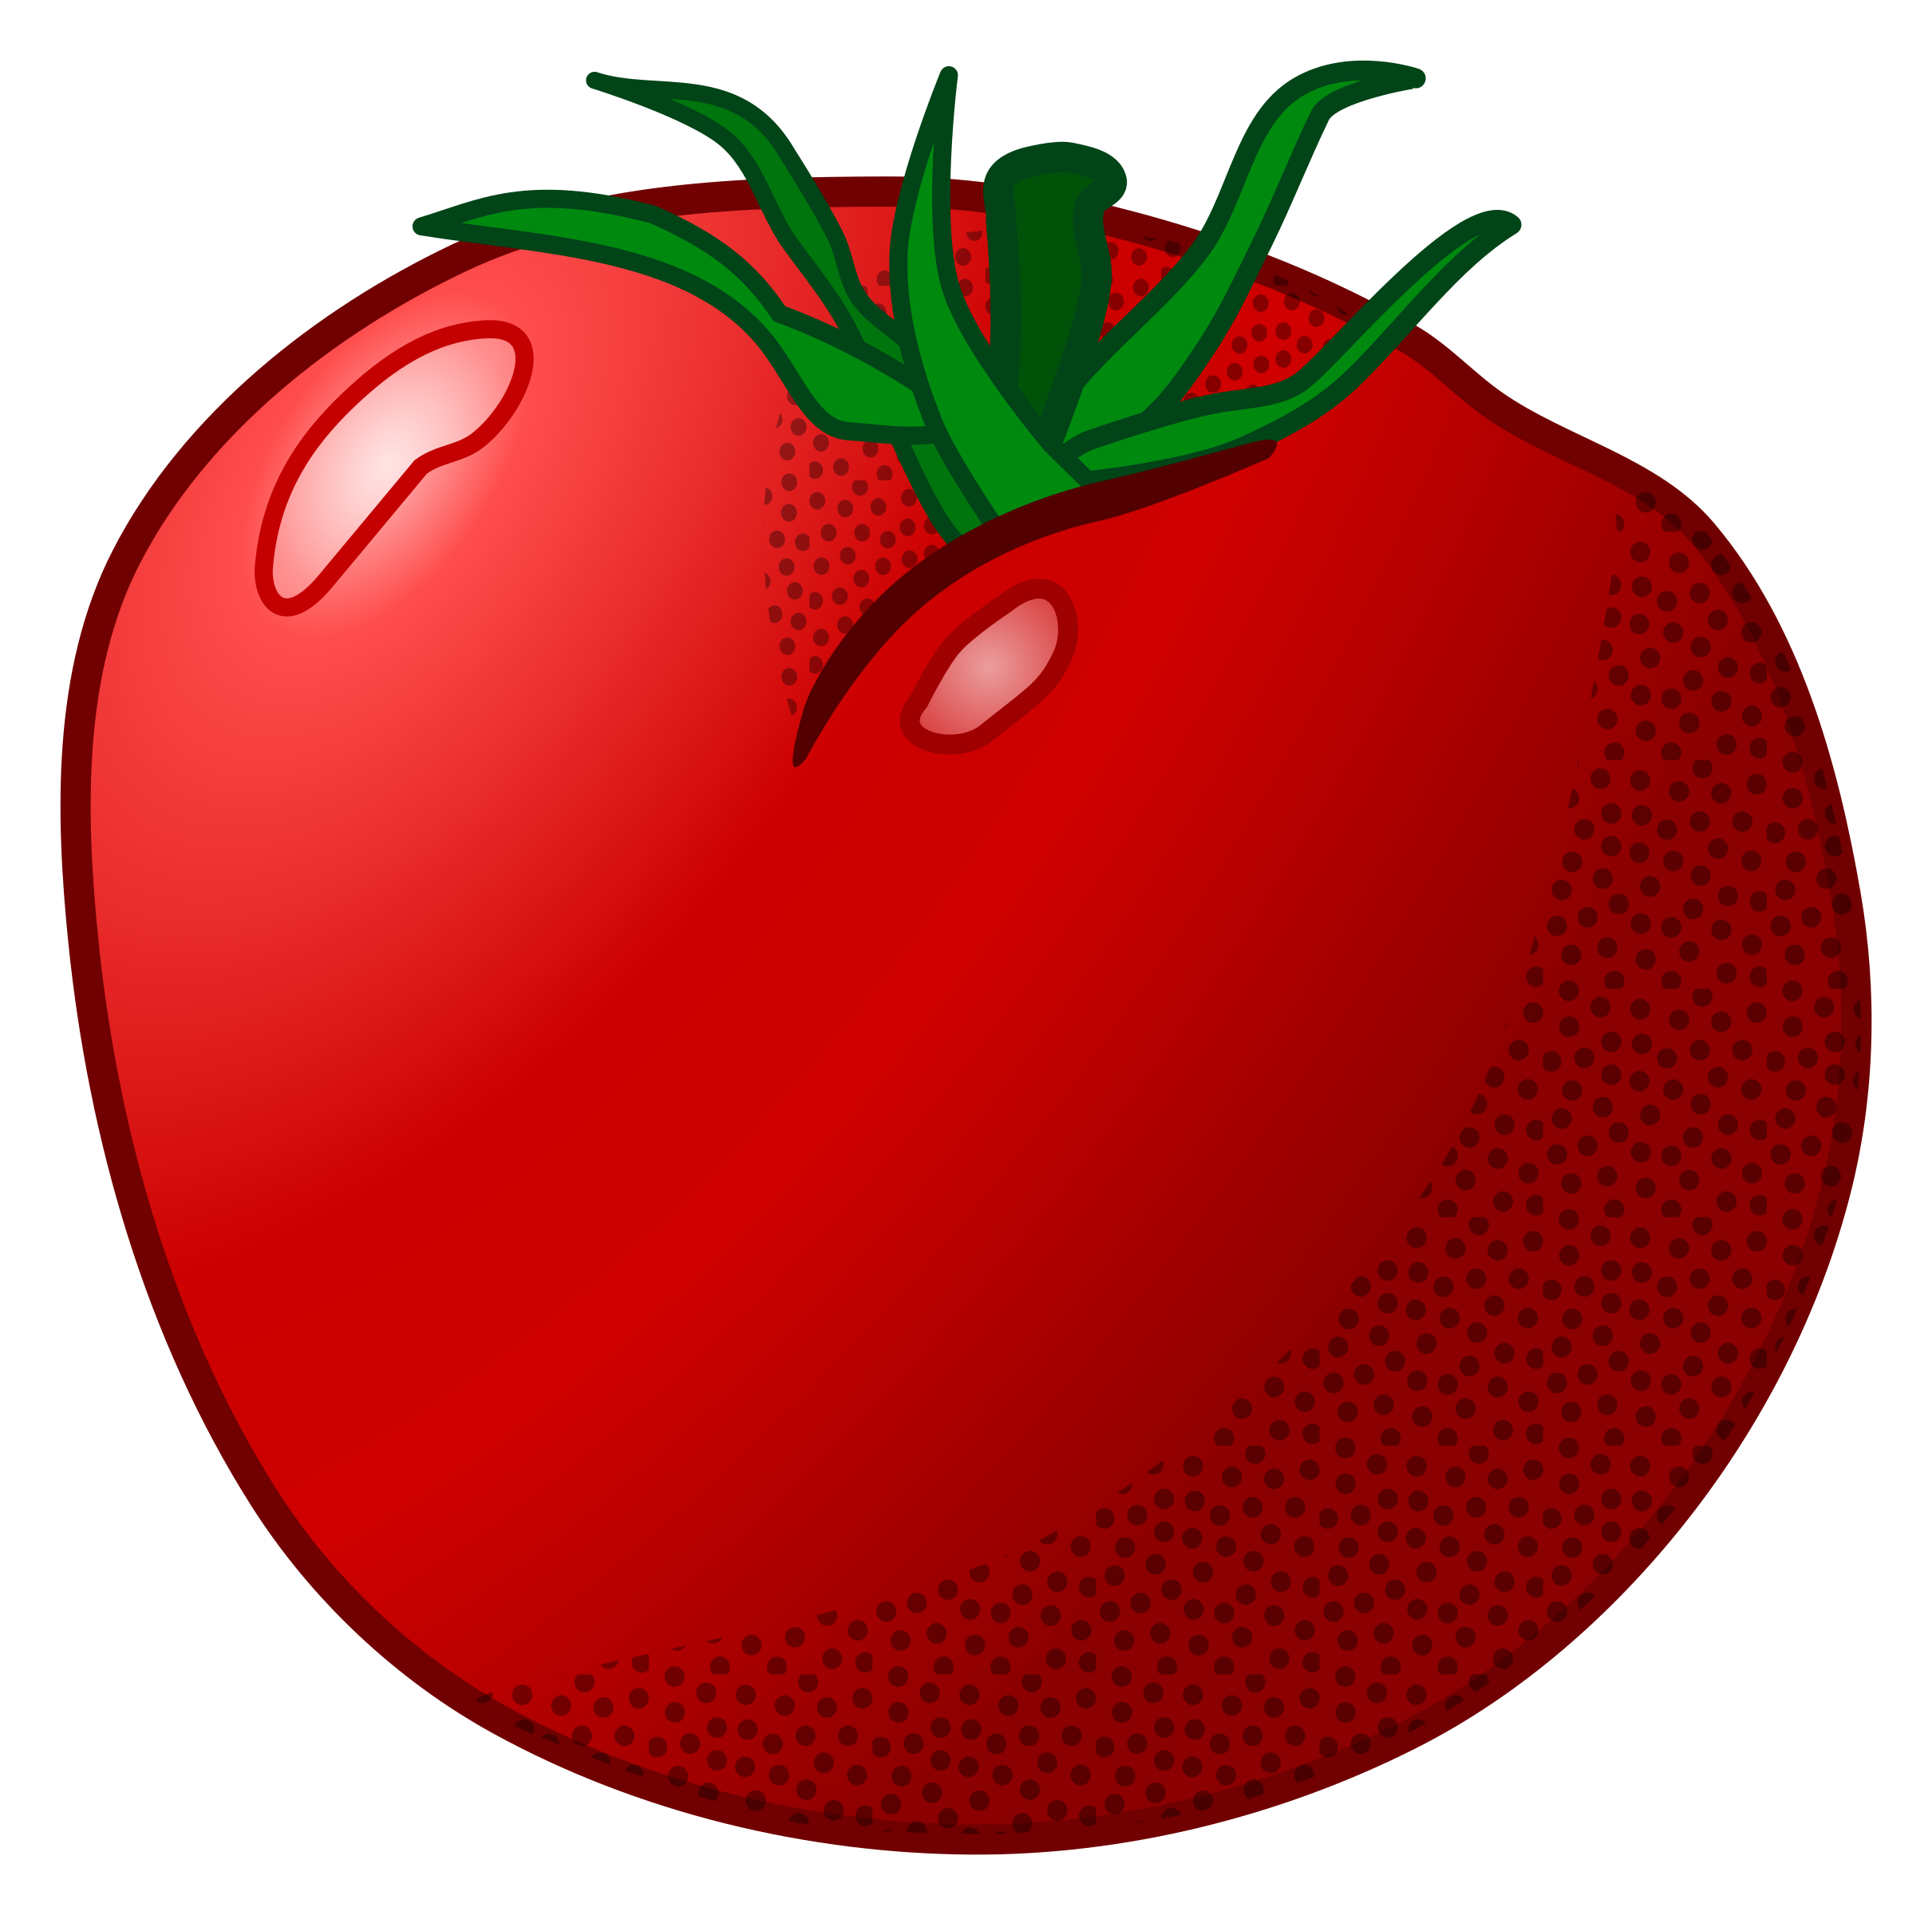 Tomatoes Clip Art Free